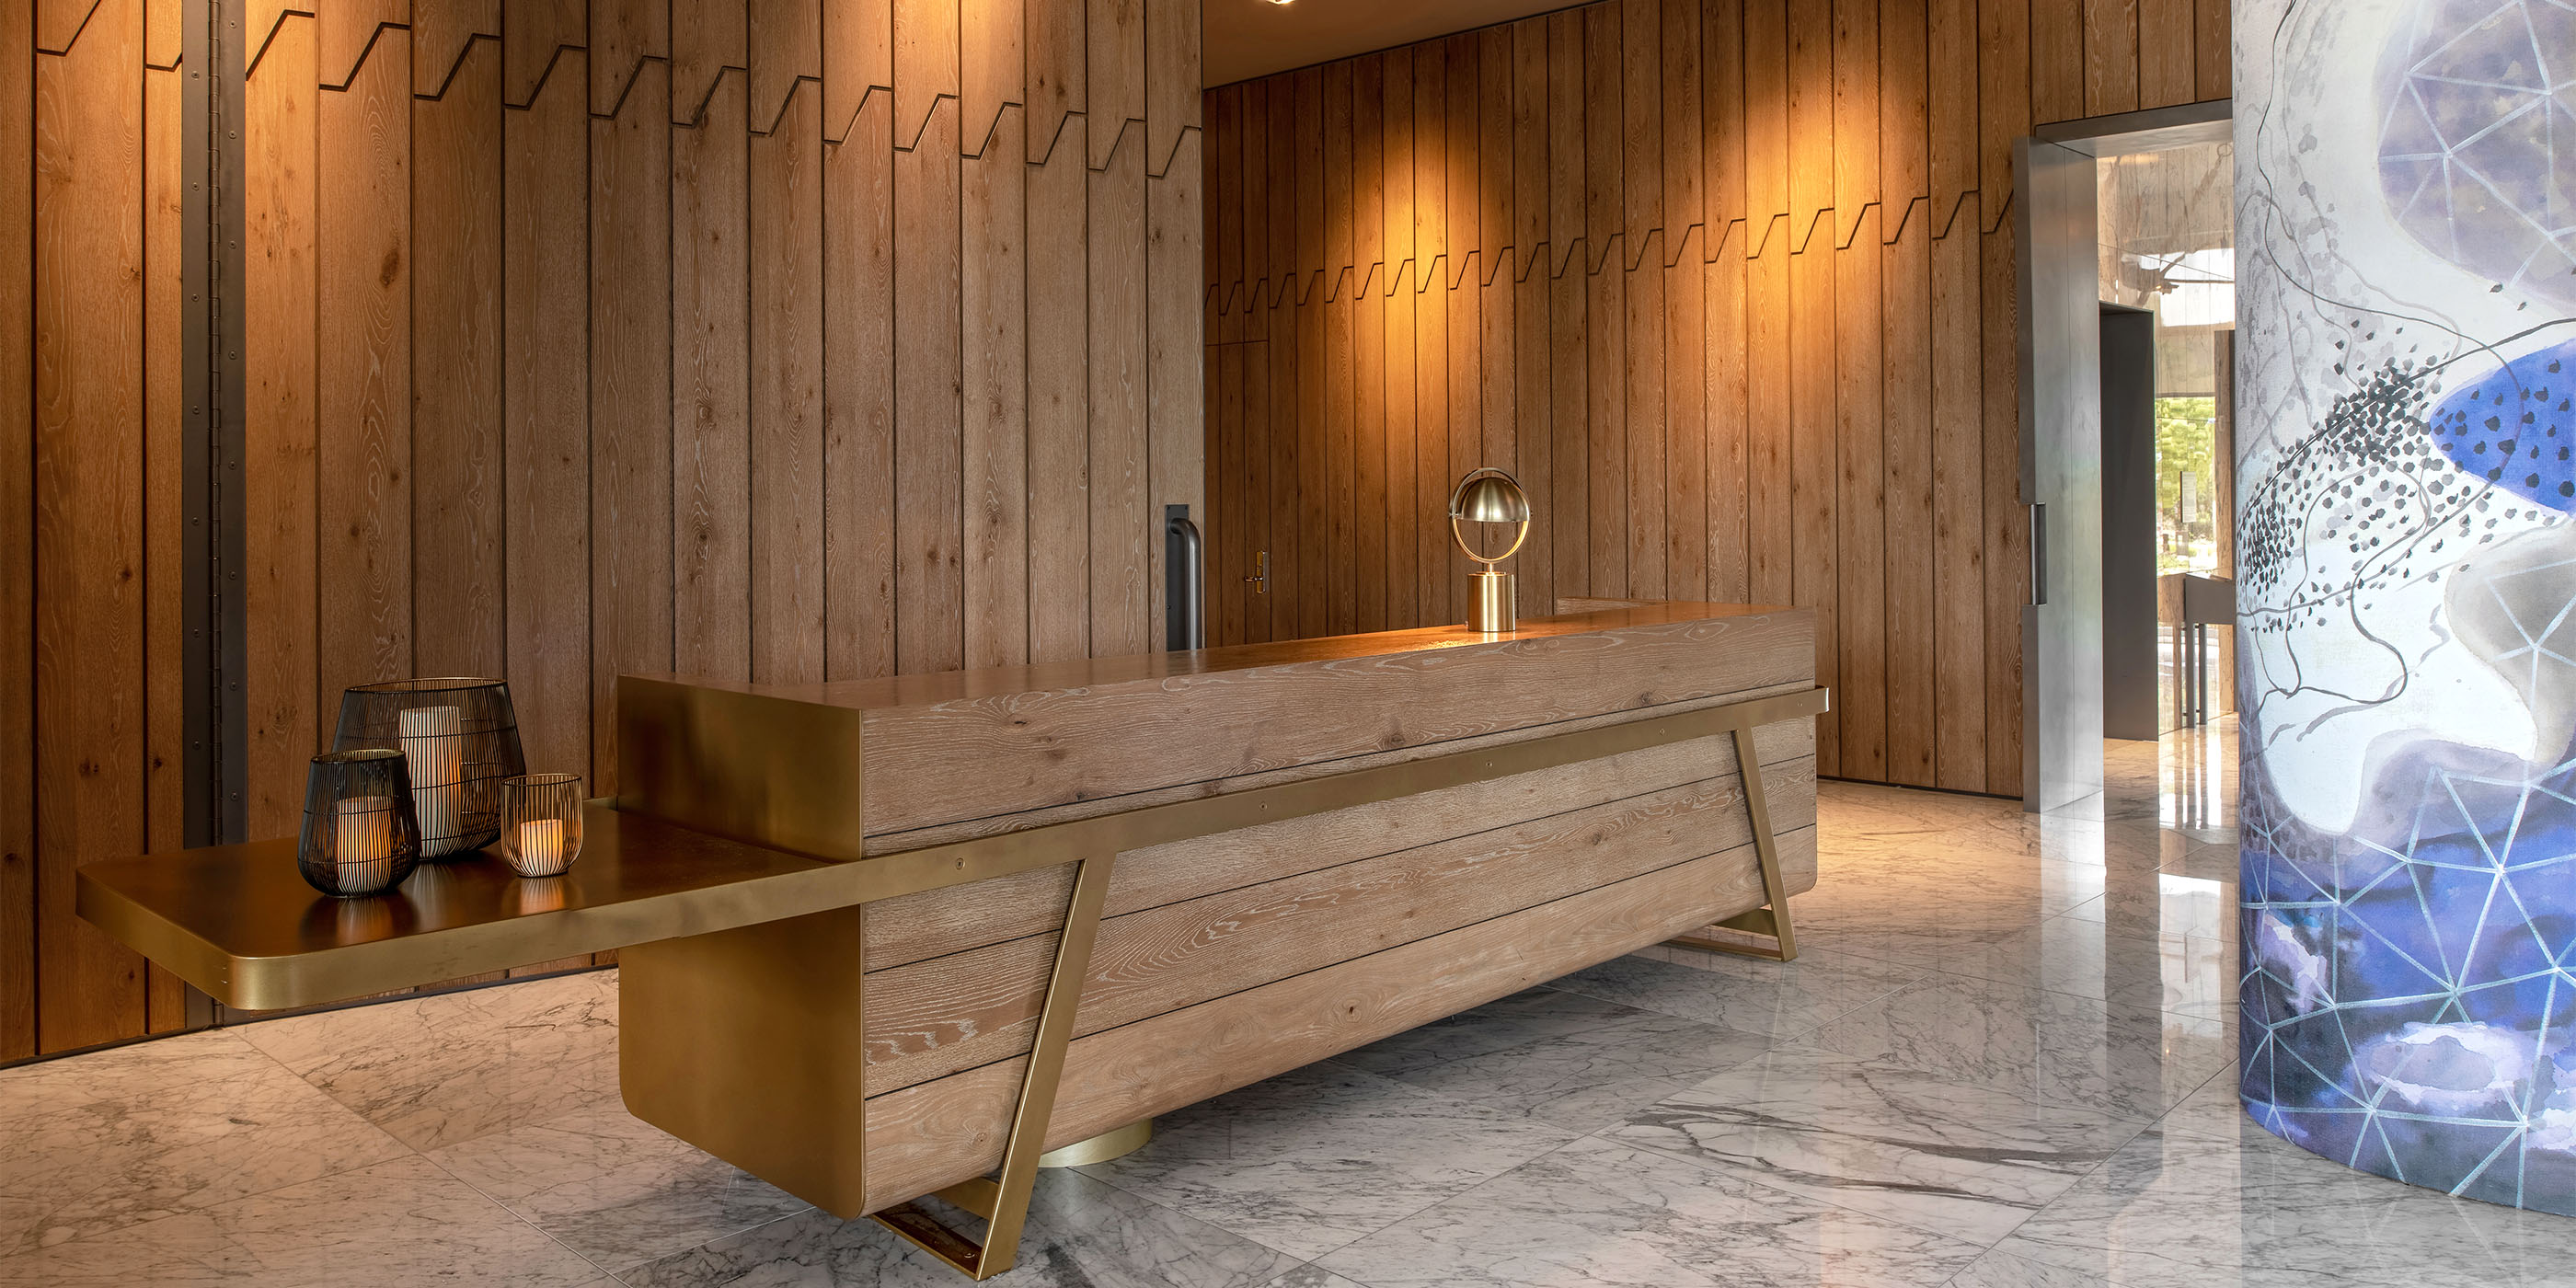 Hotel Nia - Commercial Architectural Millwork